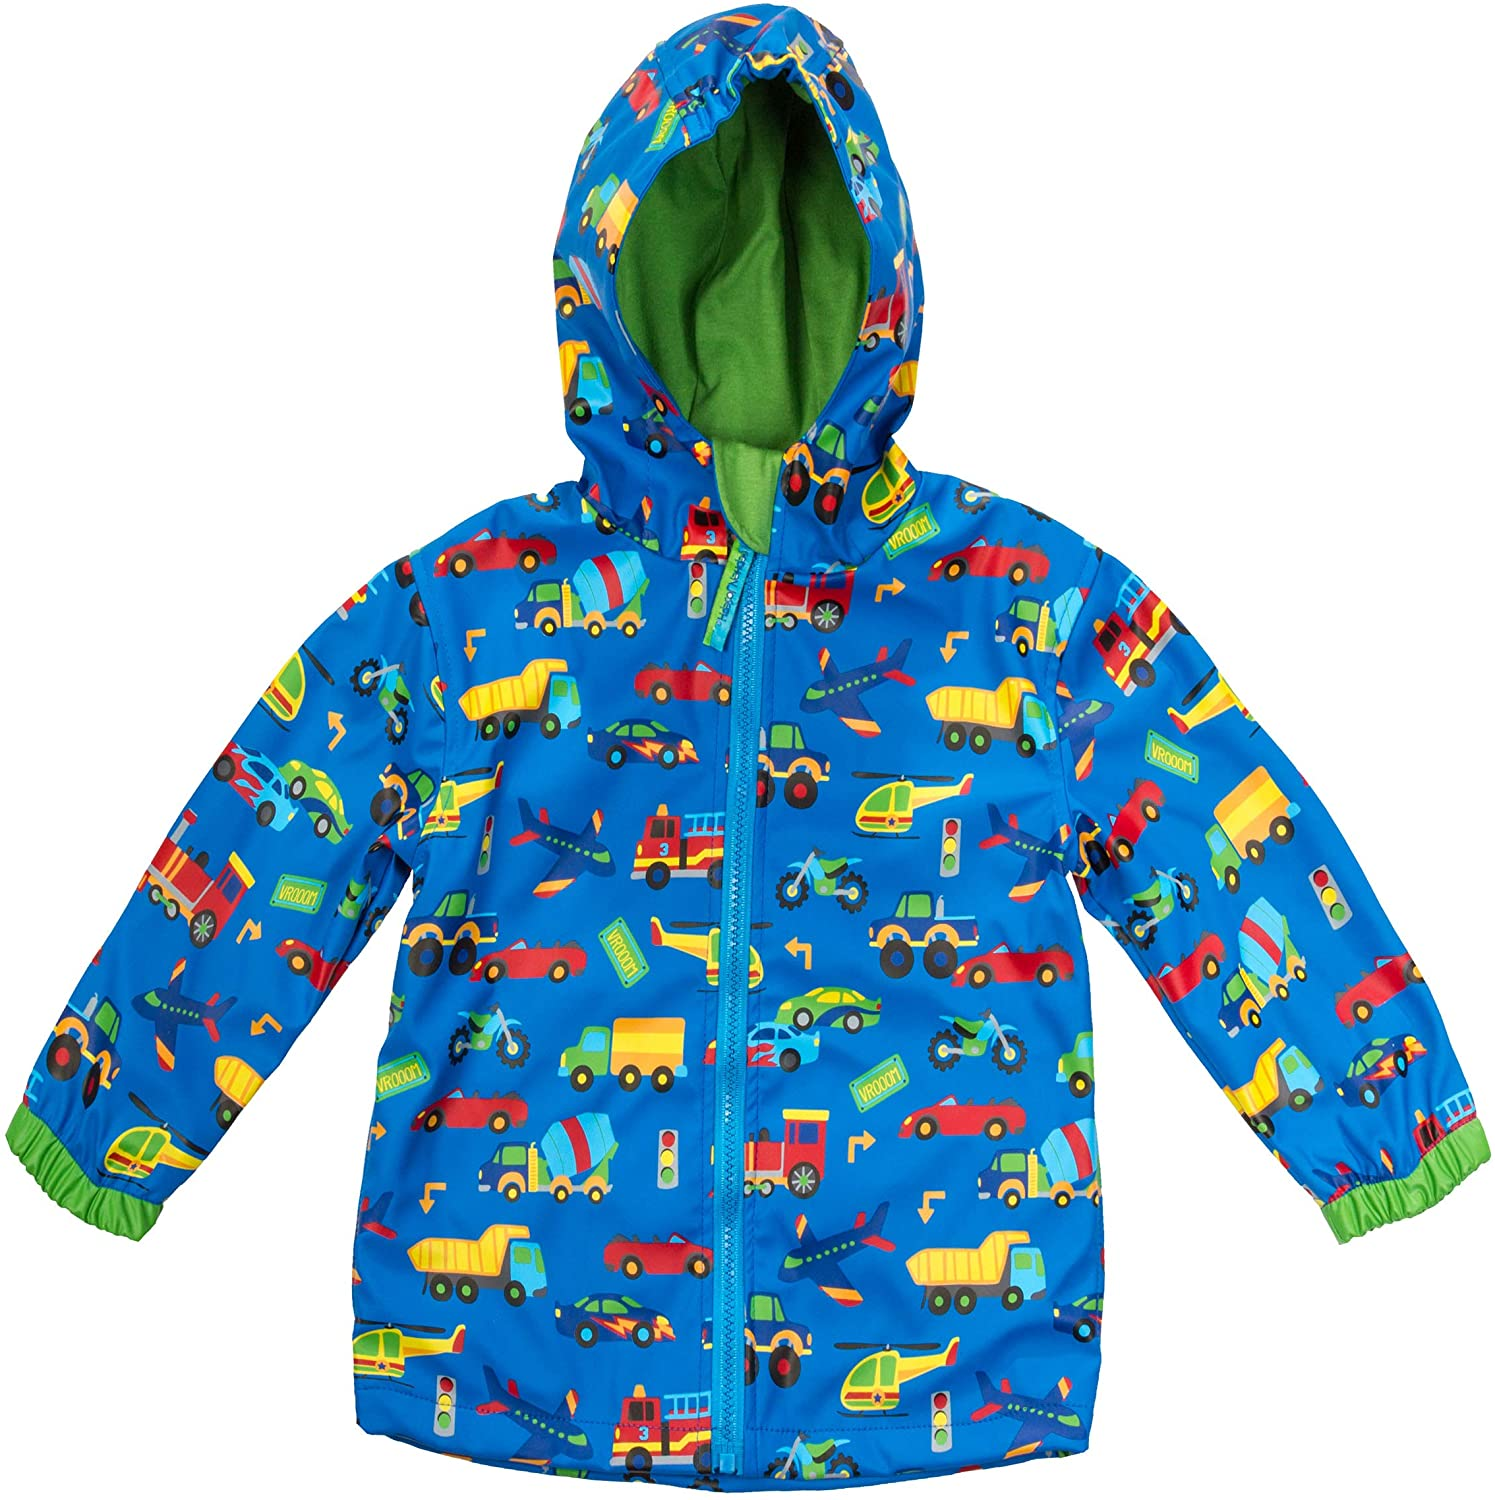 Stephen Josheph Gifts Kids' Little Boys' Stephen Joseph Raincoat, TRANSPORTATION, 56